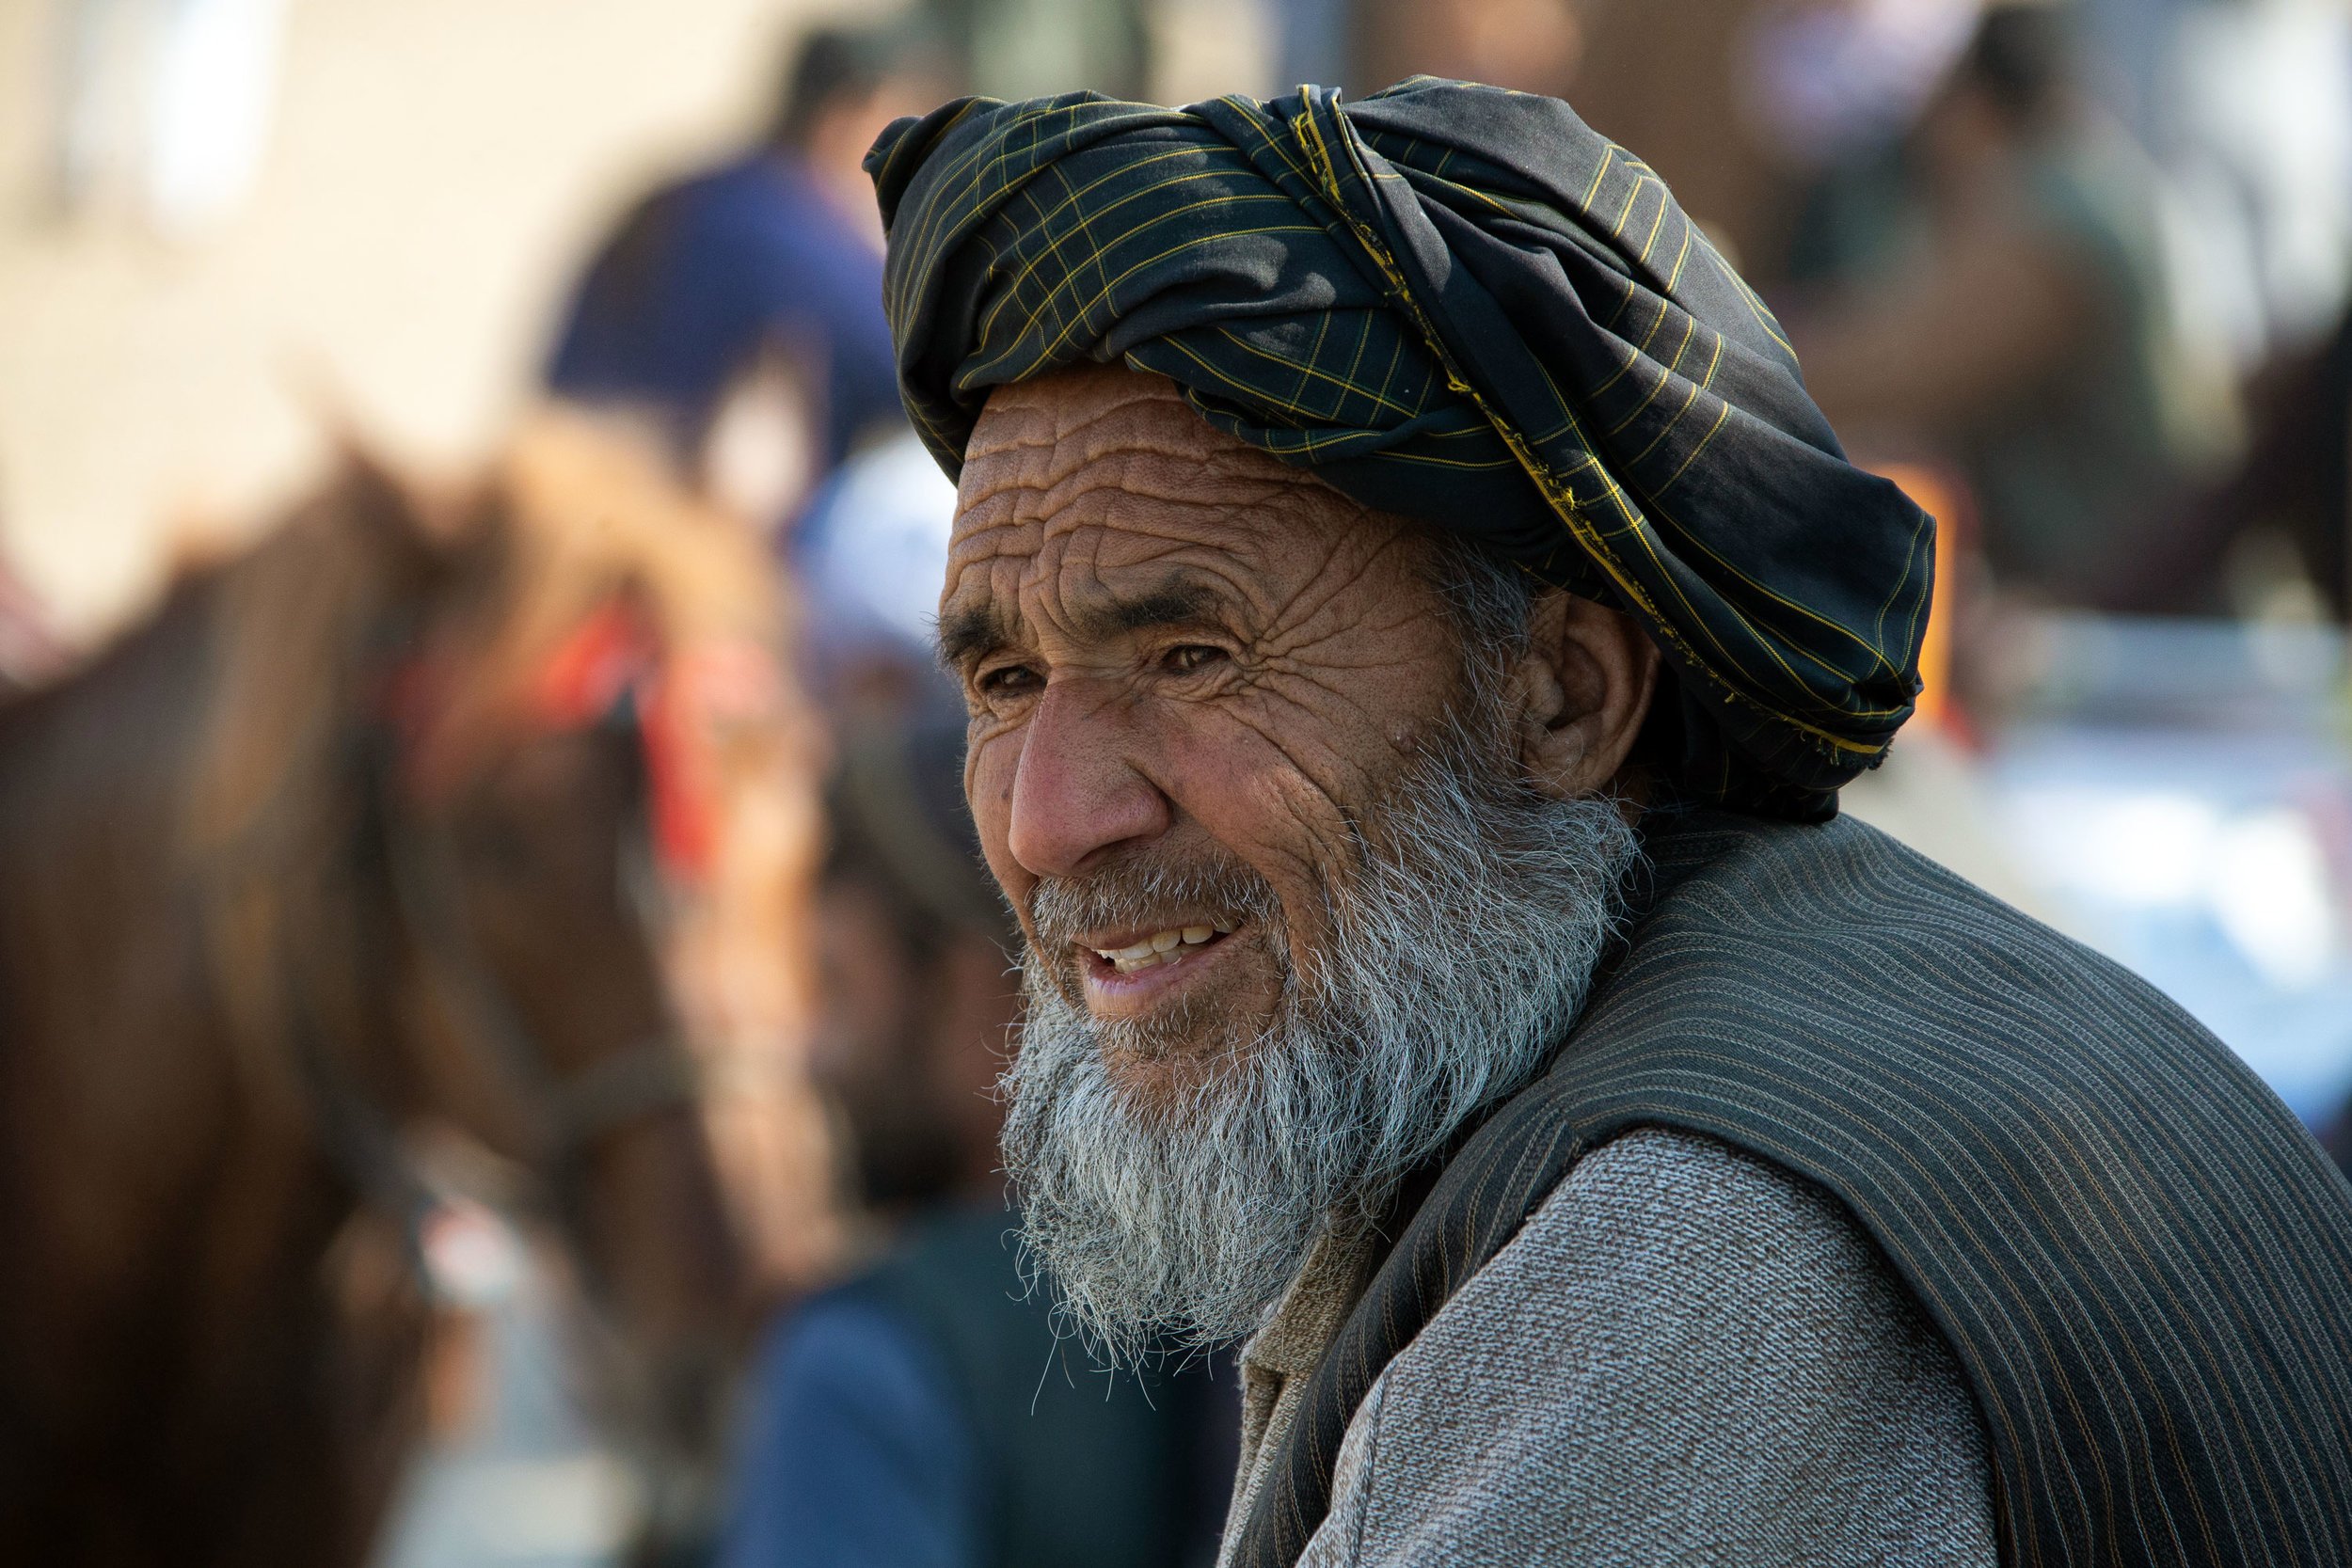 An ethnic Uzbek grandfather watches a Buzkashi match outside the city of Mazar-i Sharif in Balkh Province.